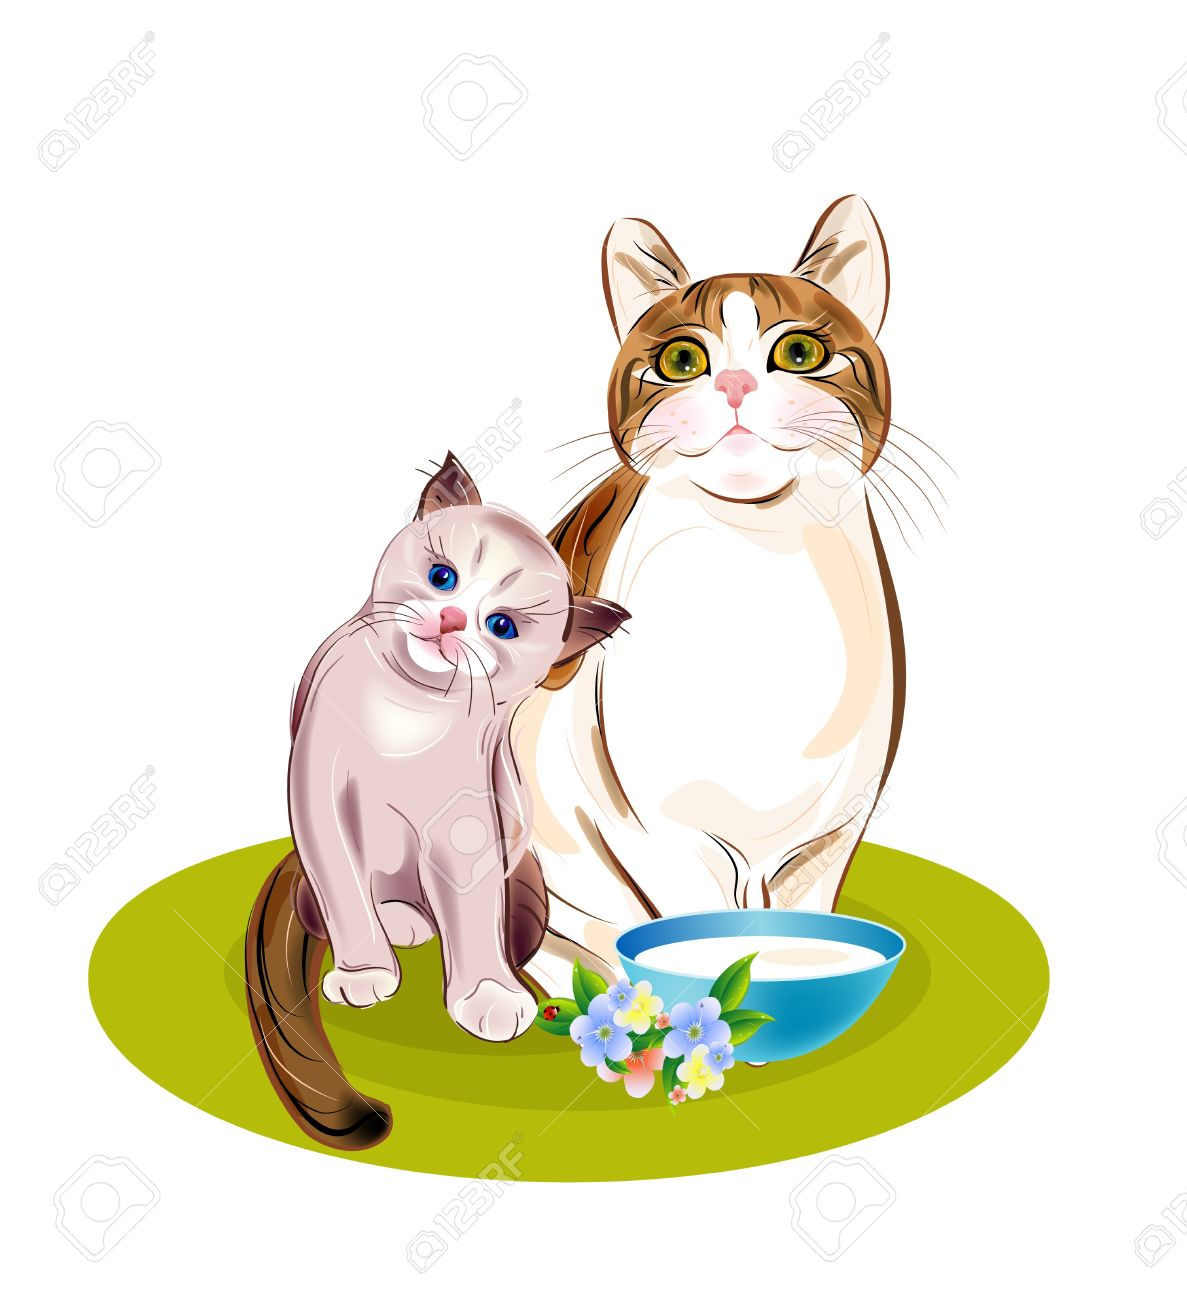 Free Clipart Kittens